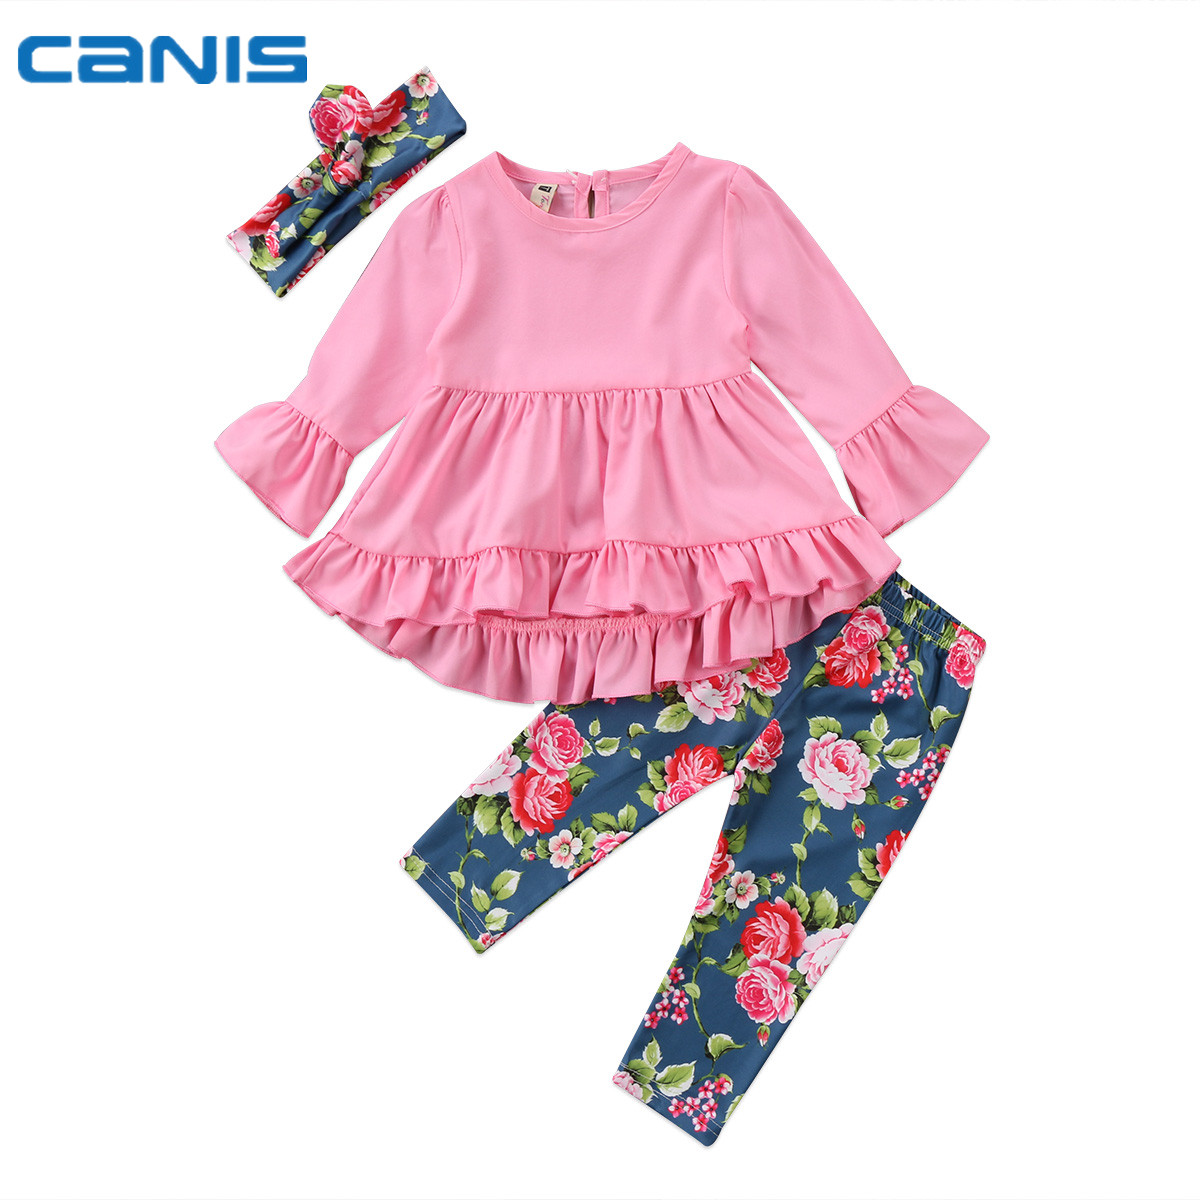 2017 Brand New Newborn Toddler Infant Baby Girl Party Falbala Dress Tops Leggings Pants Headband 3Pcs Outfit Flower Set 2-7T us stock floral newborn baby girls lace romper pants headband outfit set clothes infant toddler girl brief clothing set playsuit